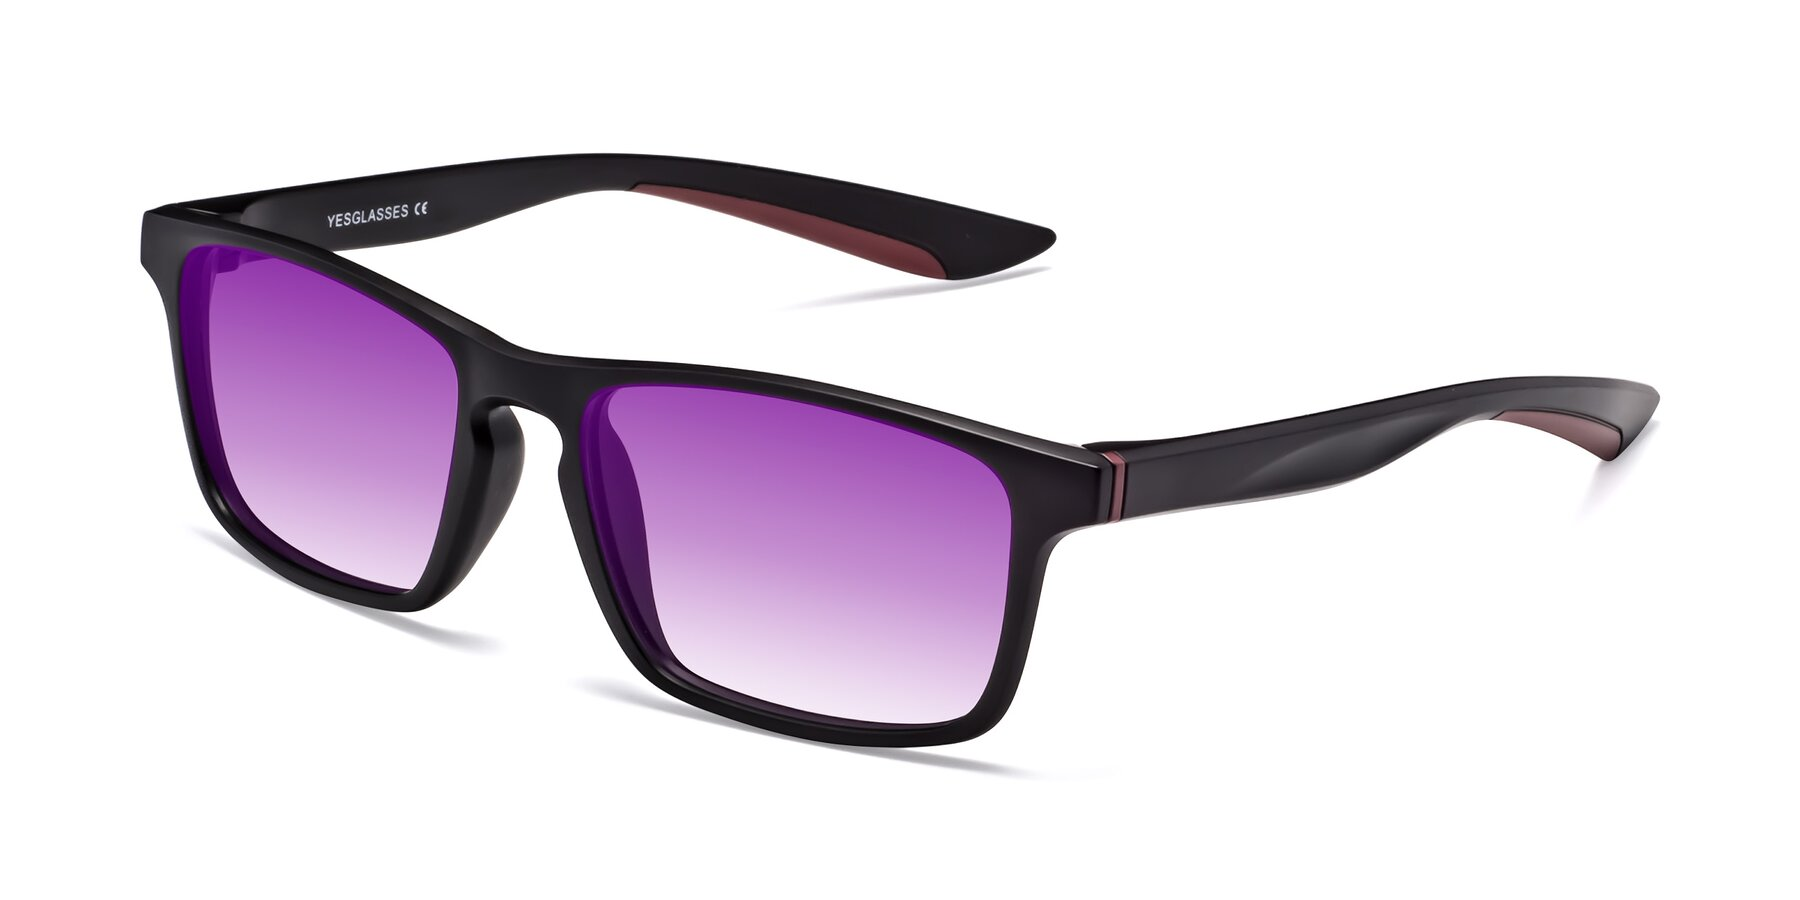 Angle of Passion in Matte Black-Wine with Purple Gradient Lenses